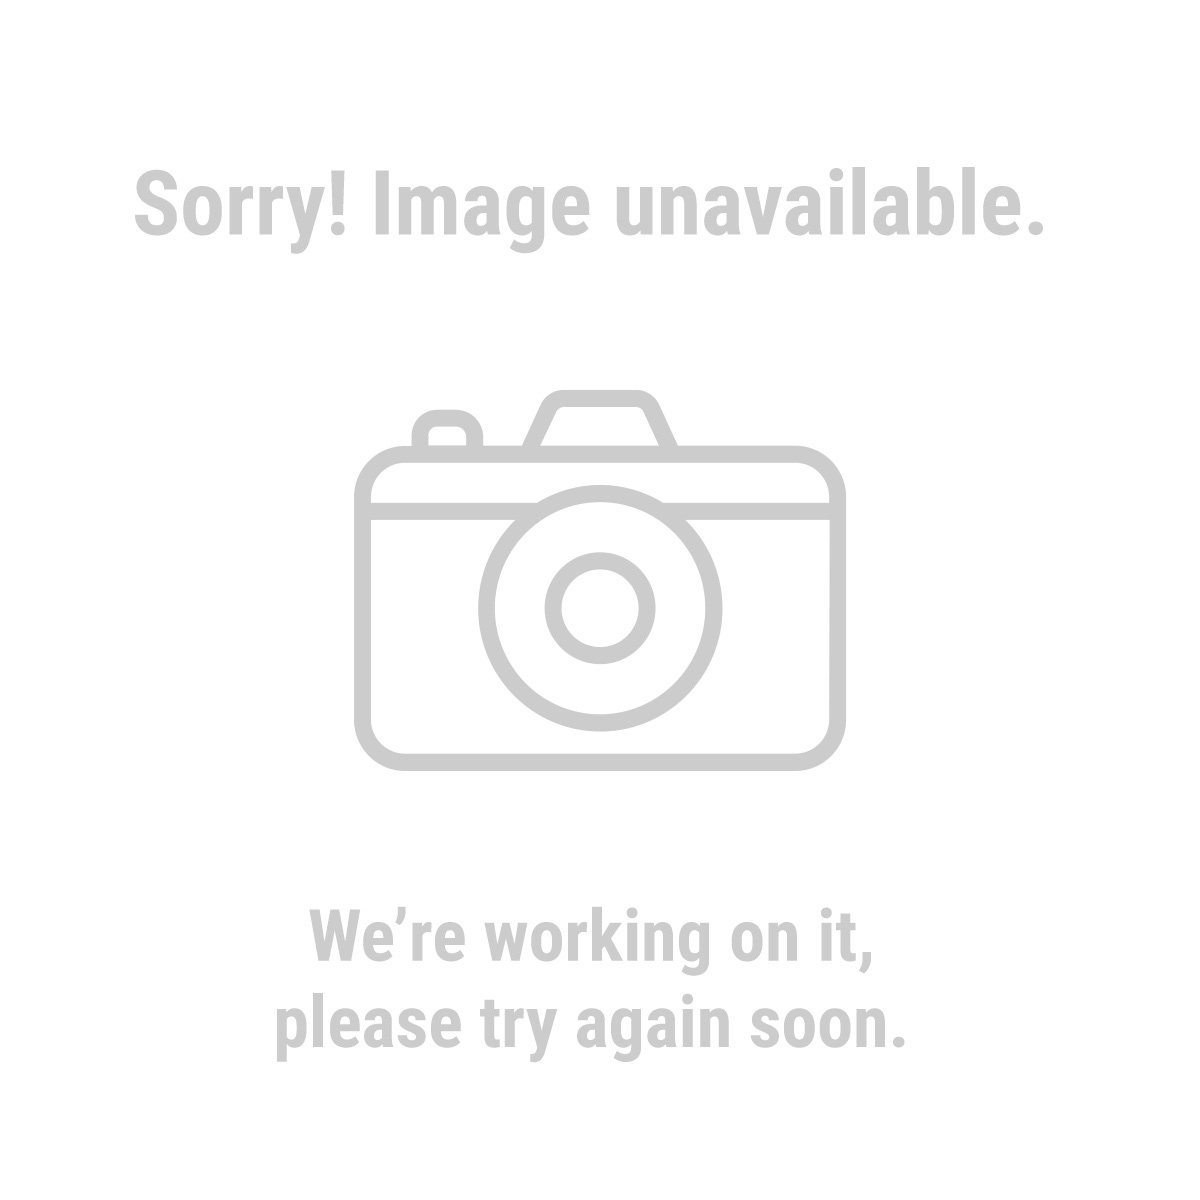 HFT 60287 50 Ft. x 14 Gauge Outdoor Extension Cord